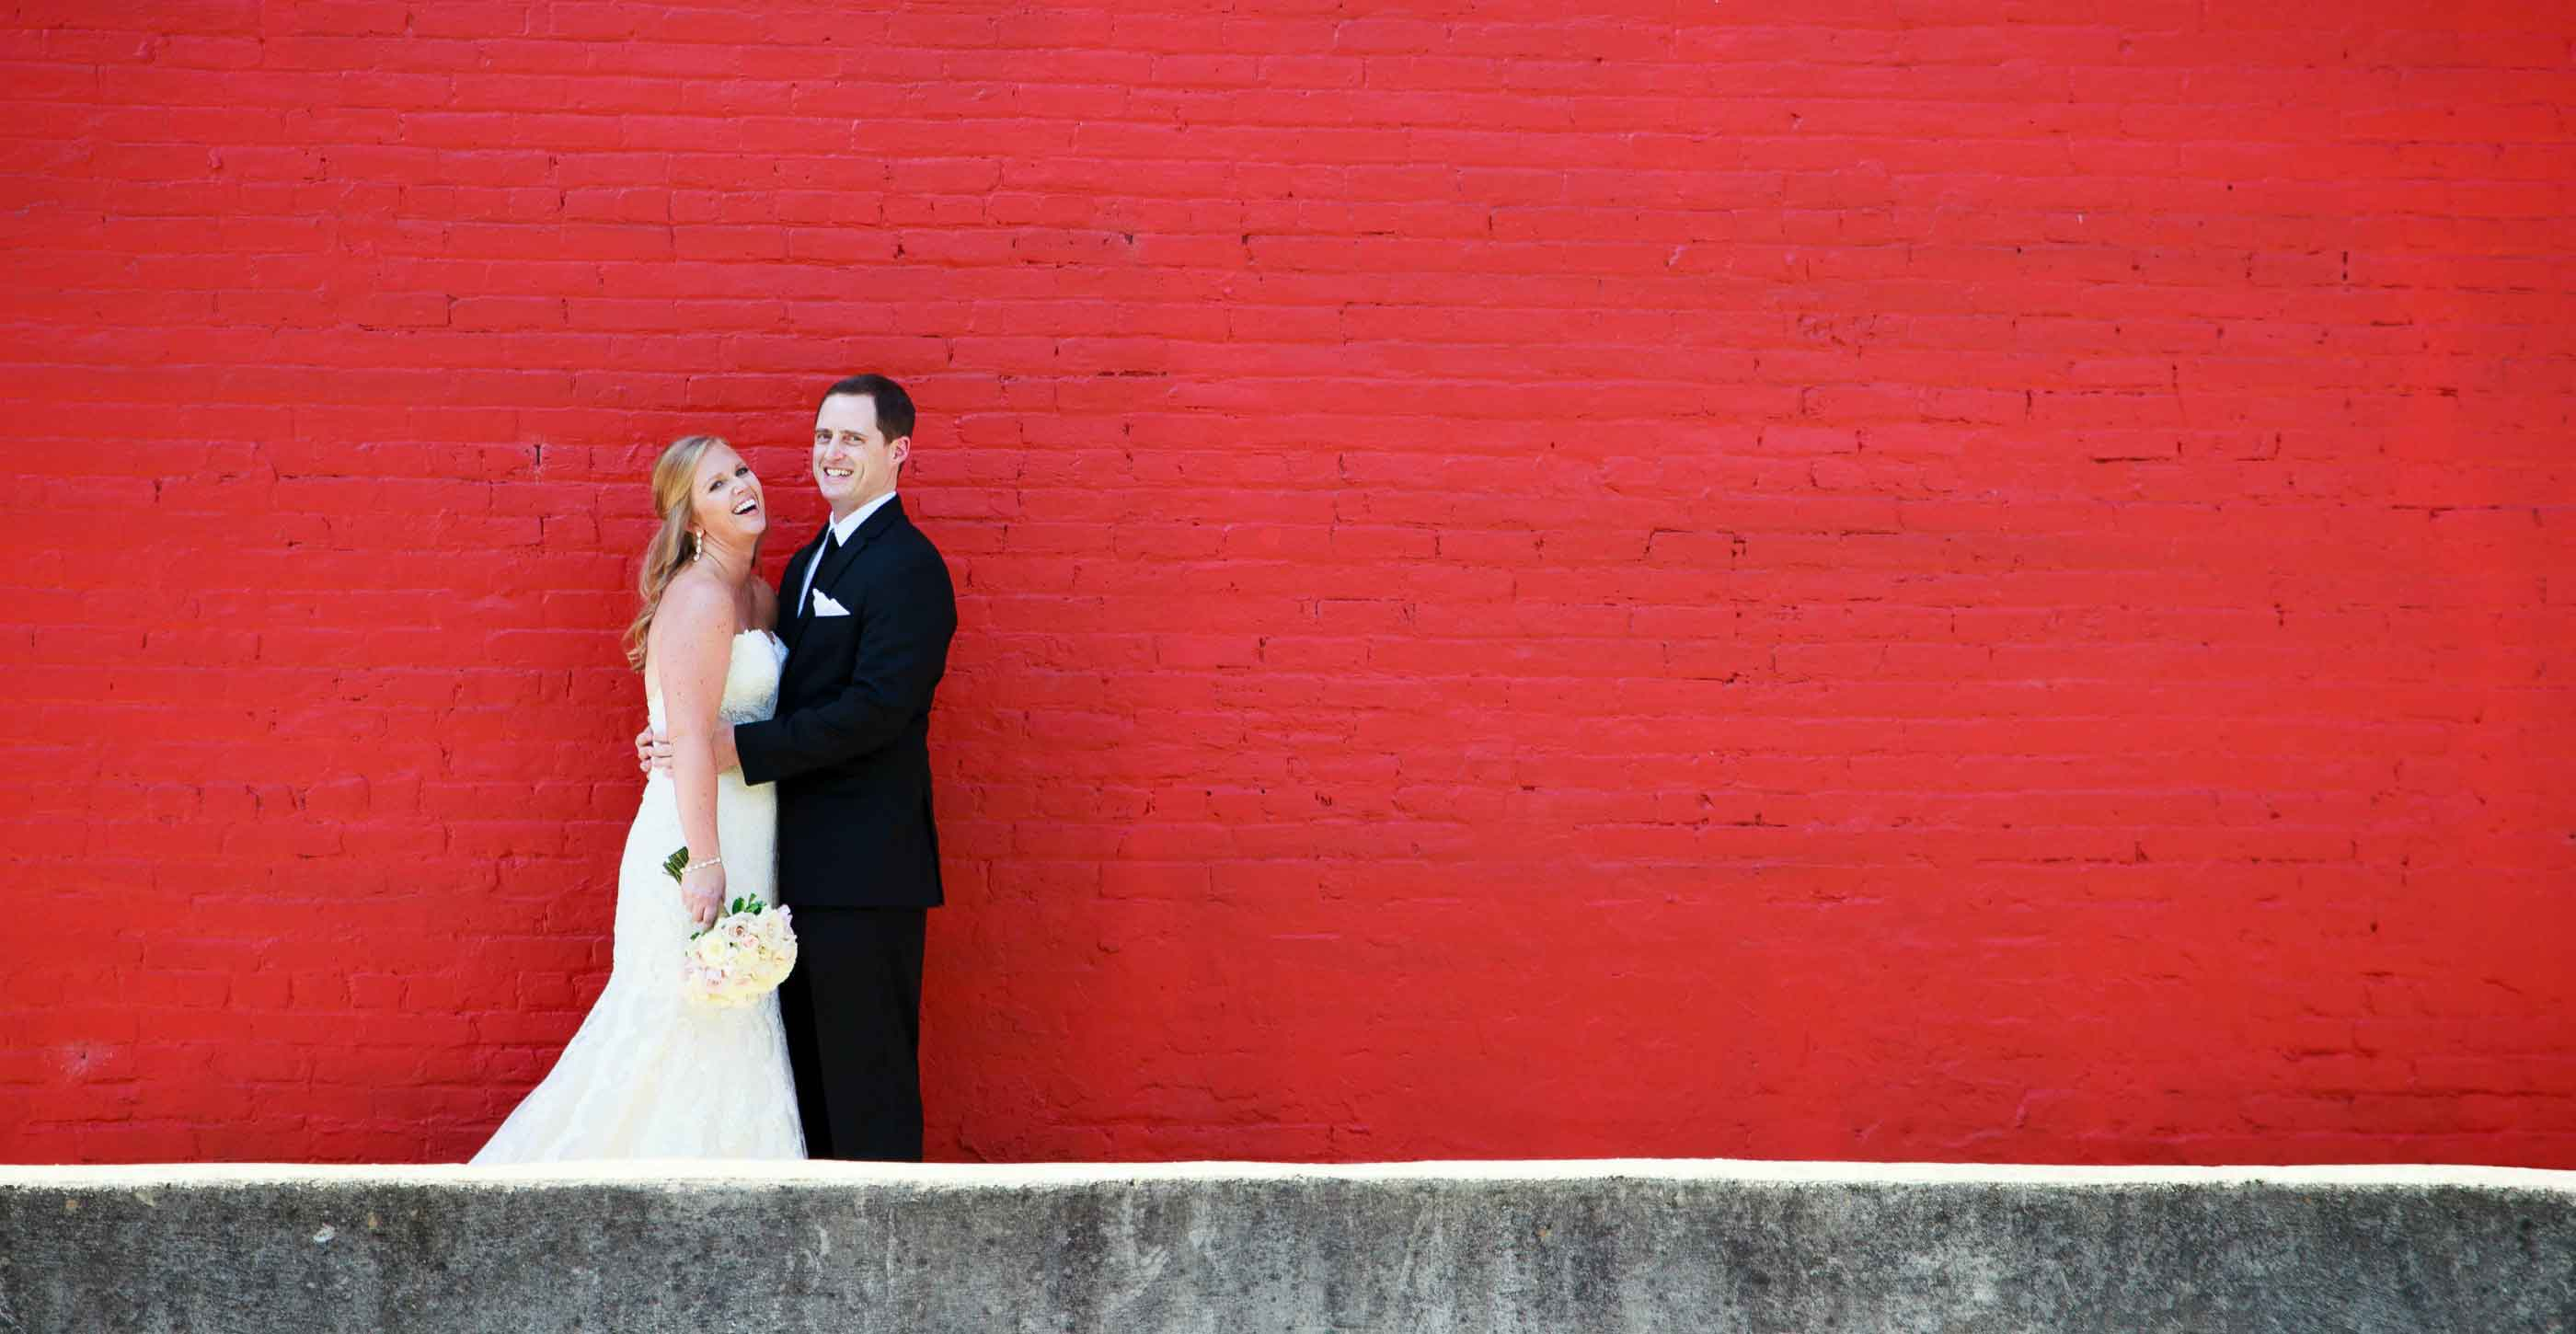 Atlanta wedding photographers wedding exit